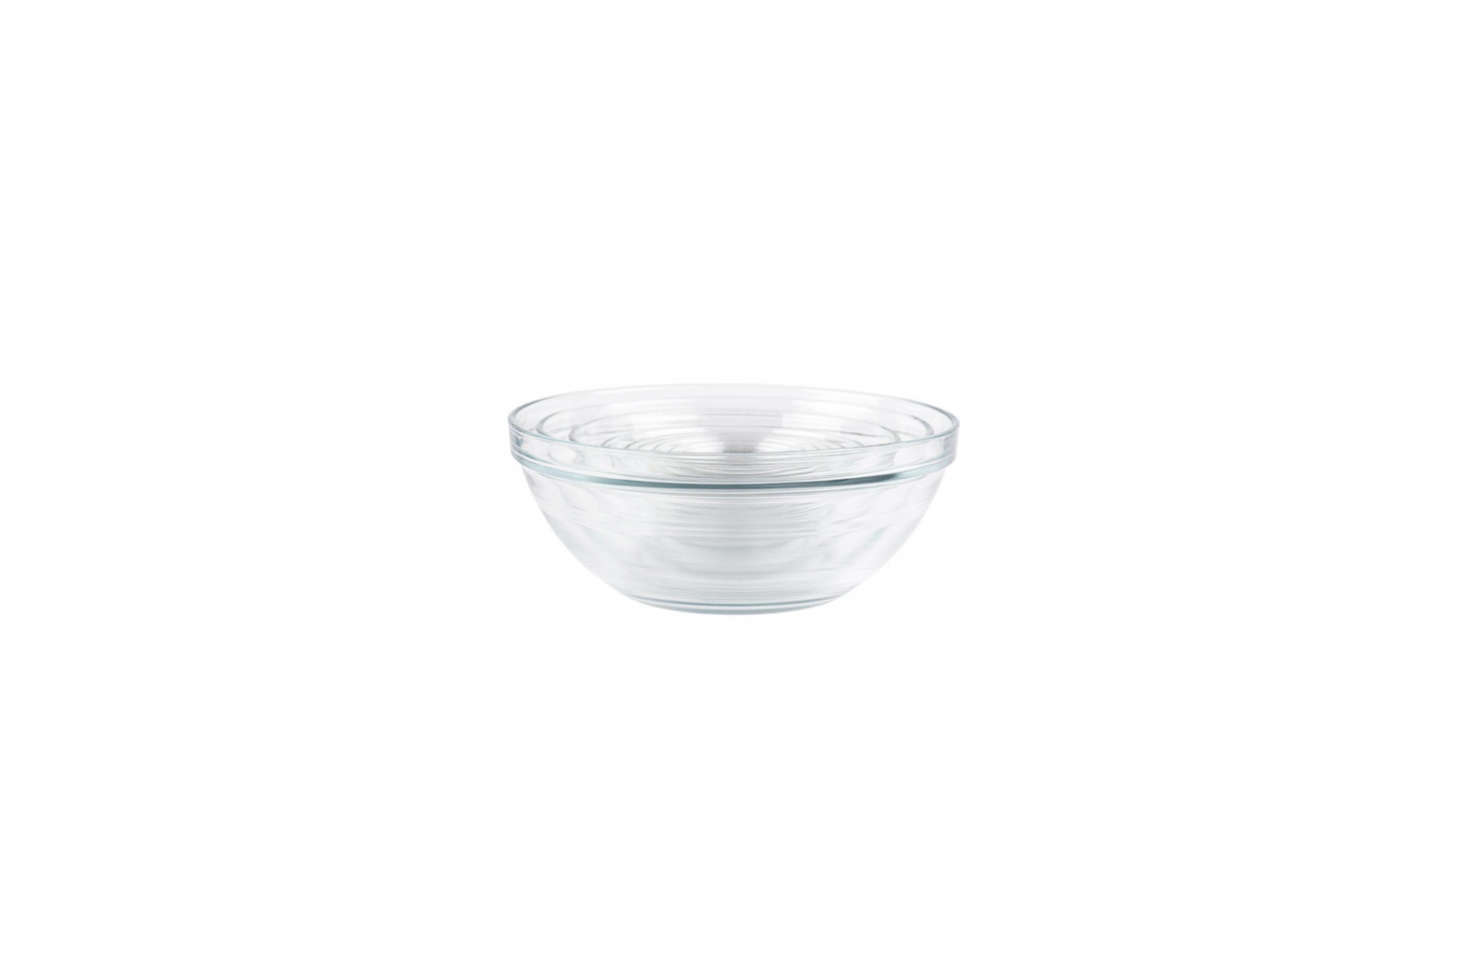 The Duralex Lys Stackable 10-Piece Bowl Set has bowls sized for mixing and prep; $39.49 for the set on Amazon.